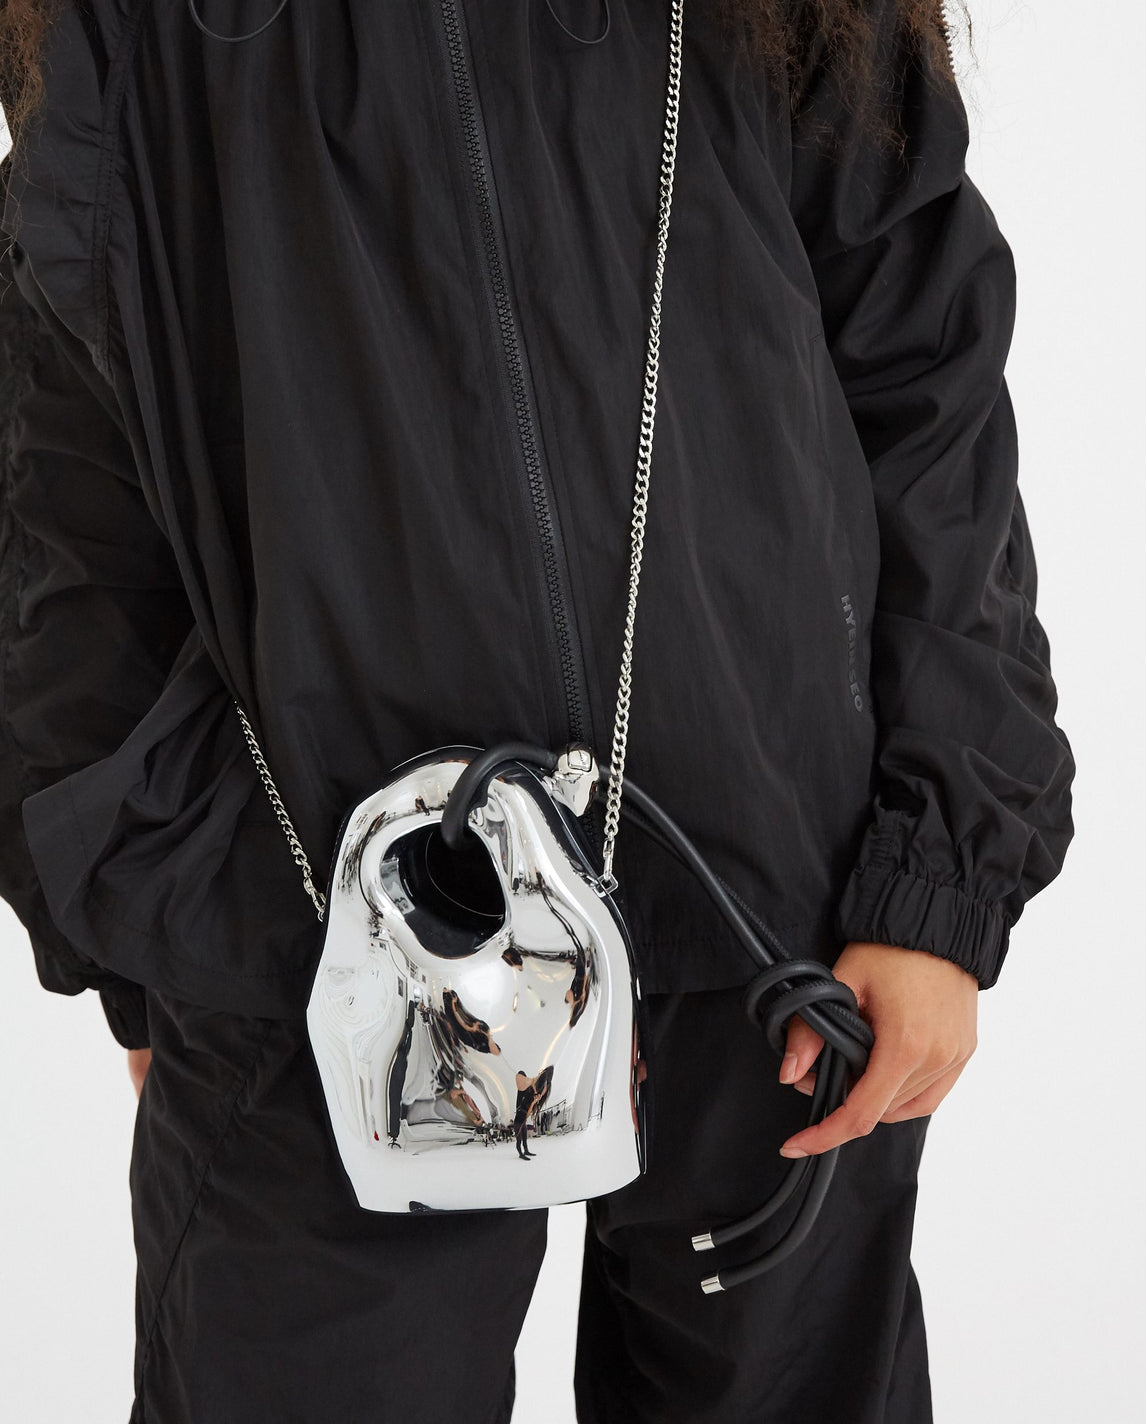 Ruby's Lost Stone Bag - Chrome UNISEX PUBLISHED BY